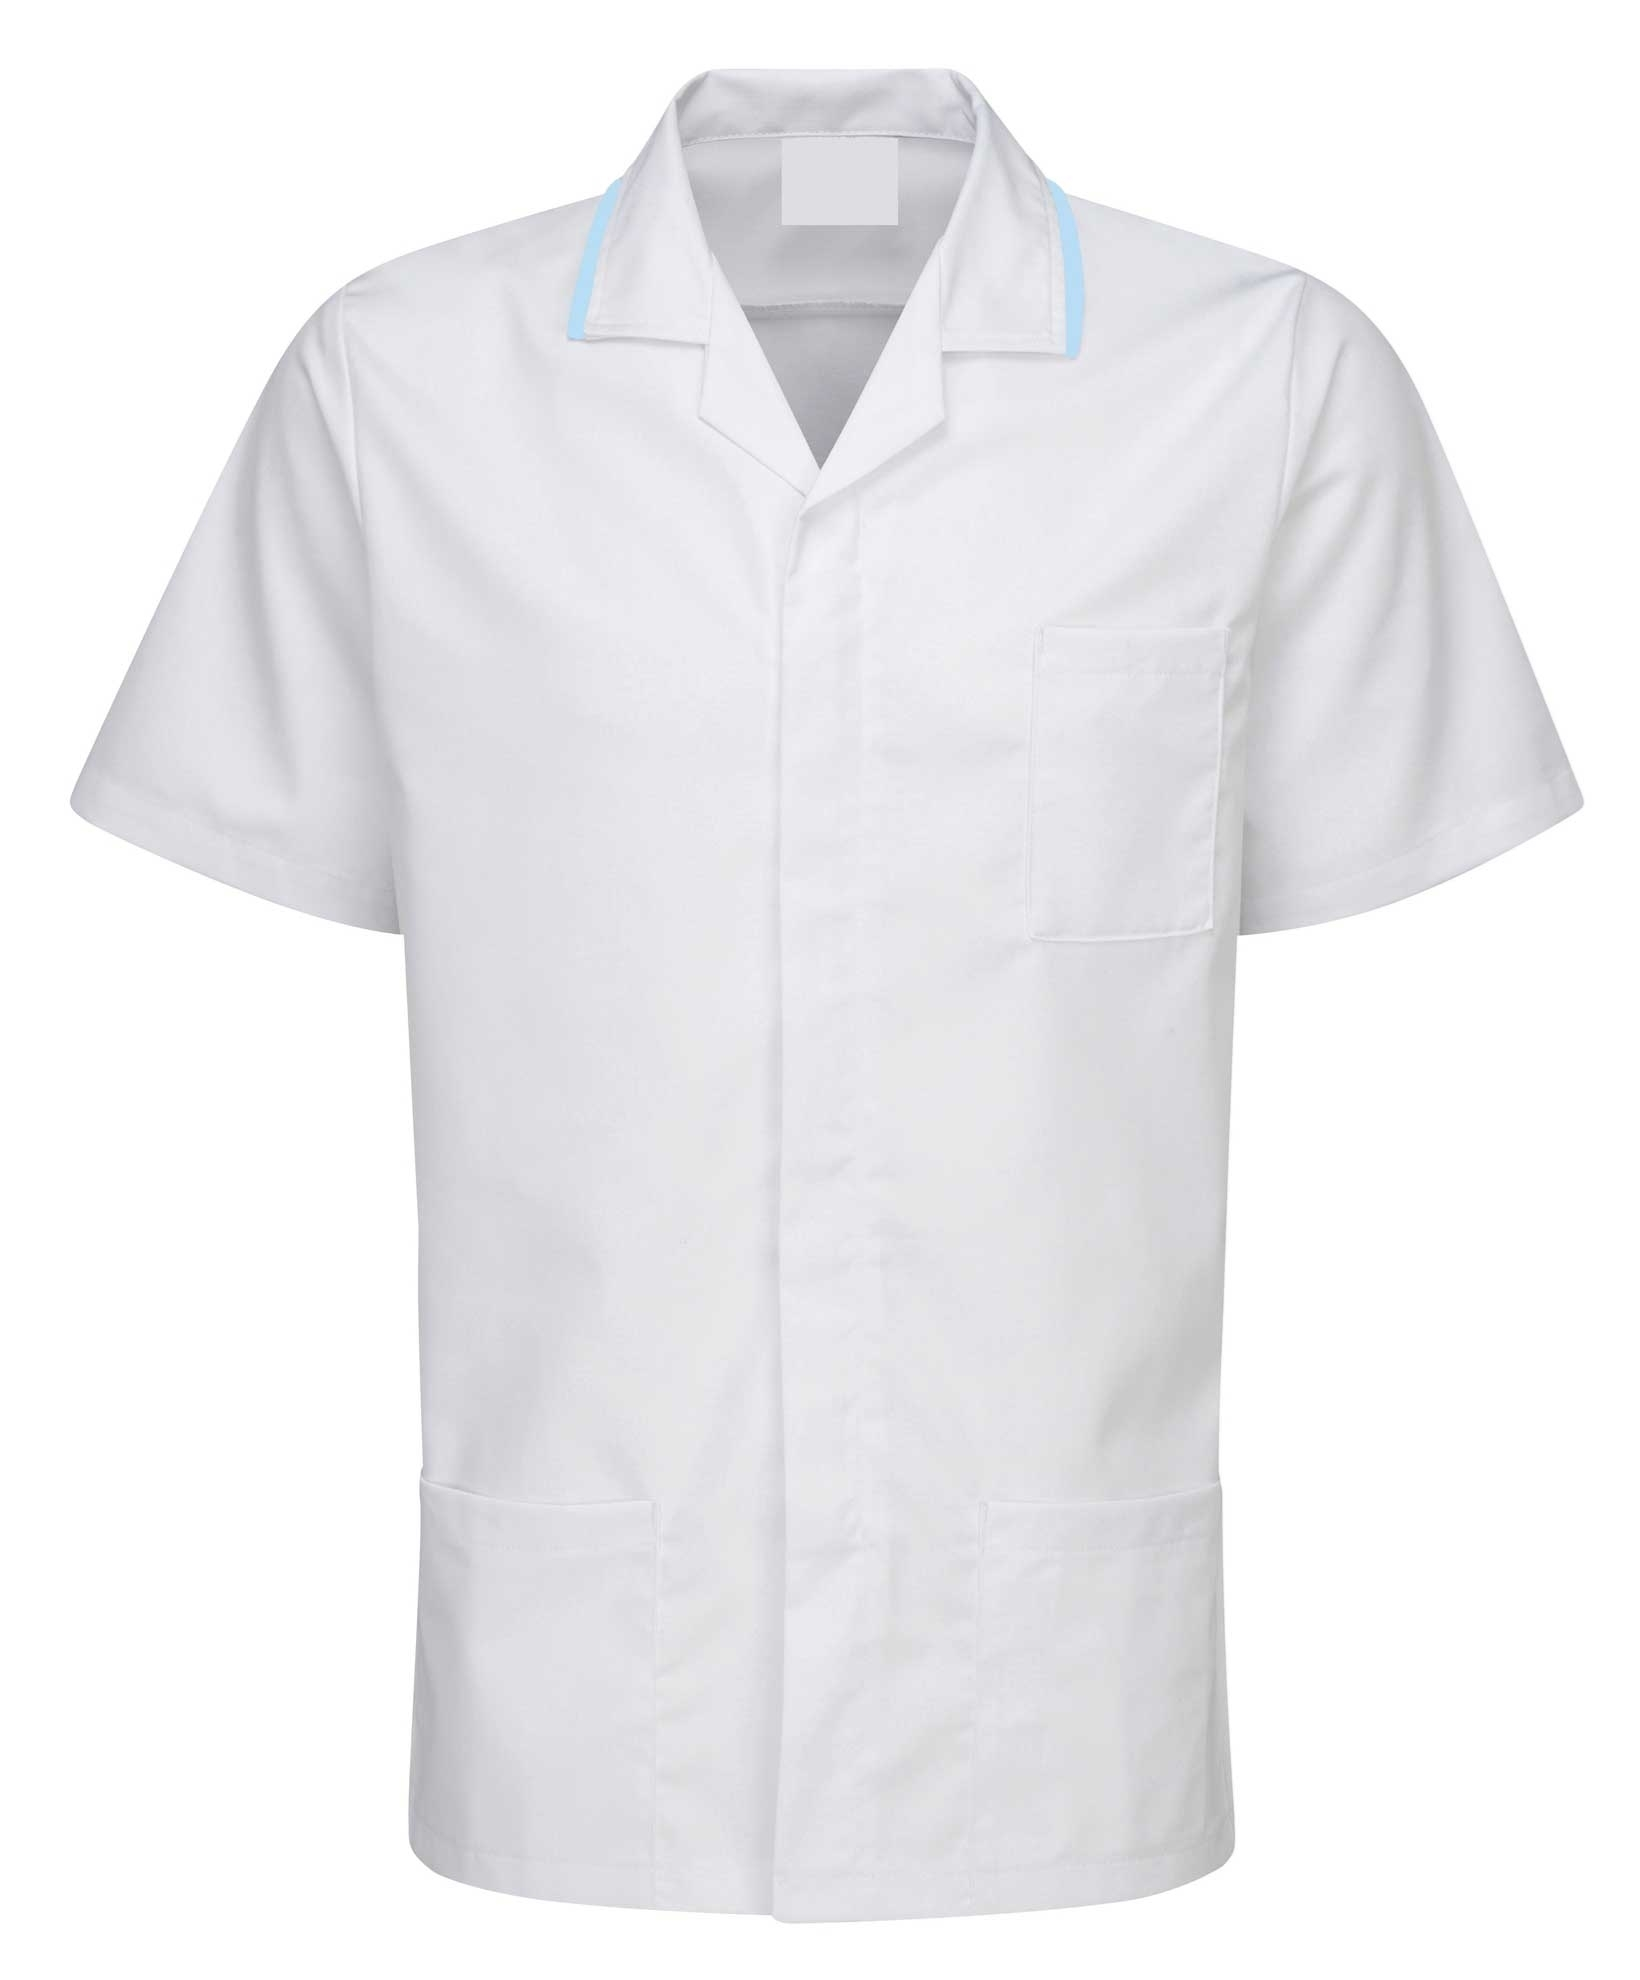 Picture of Advantage Front Fastening Tunic - White/Sky Blue